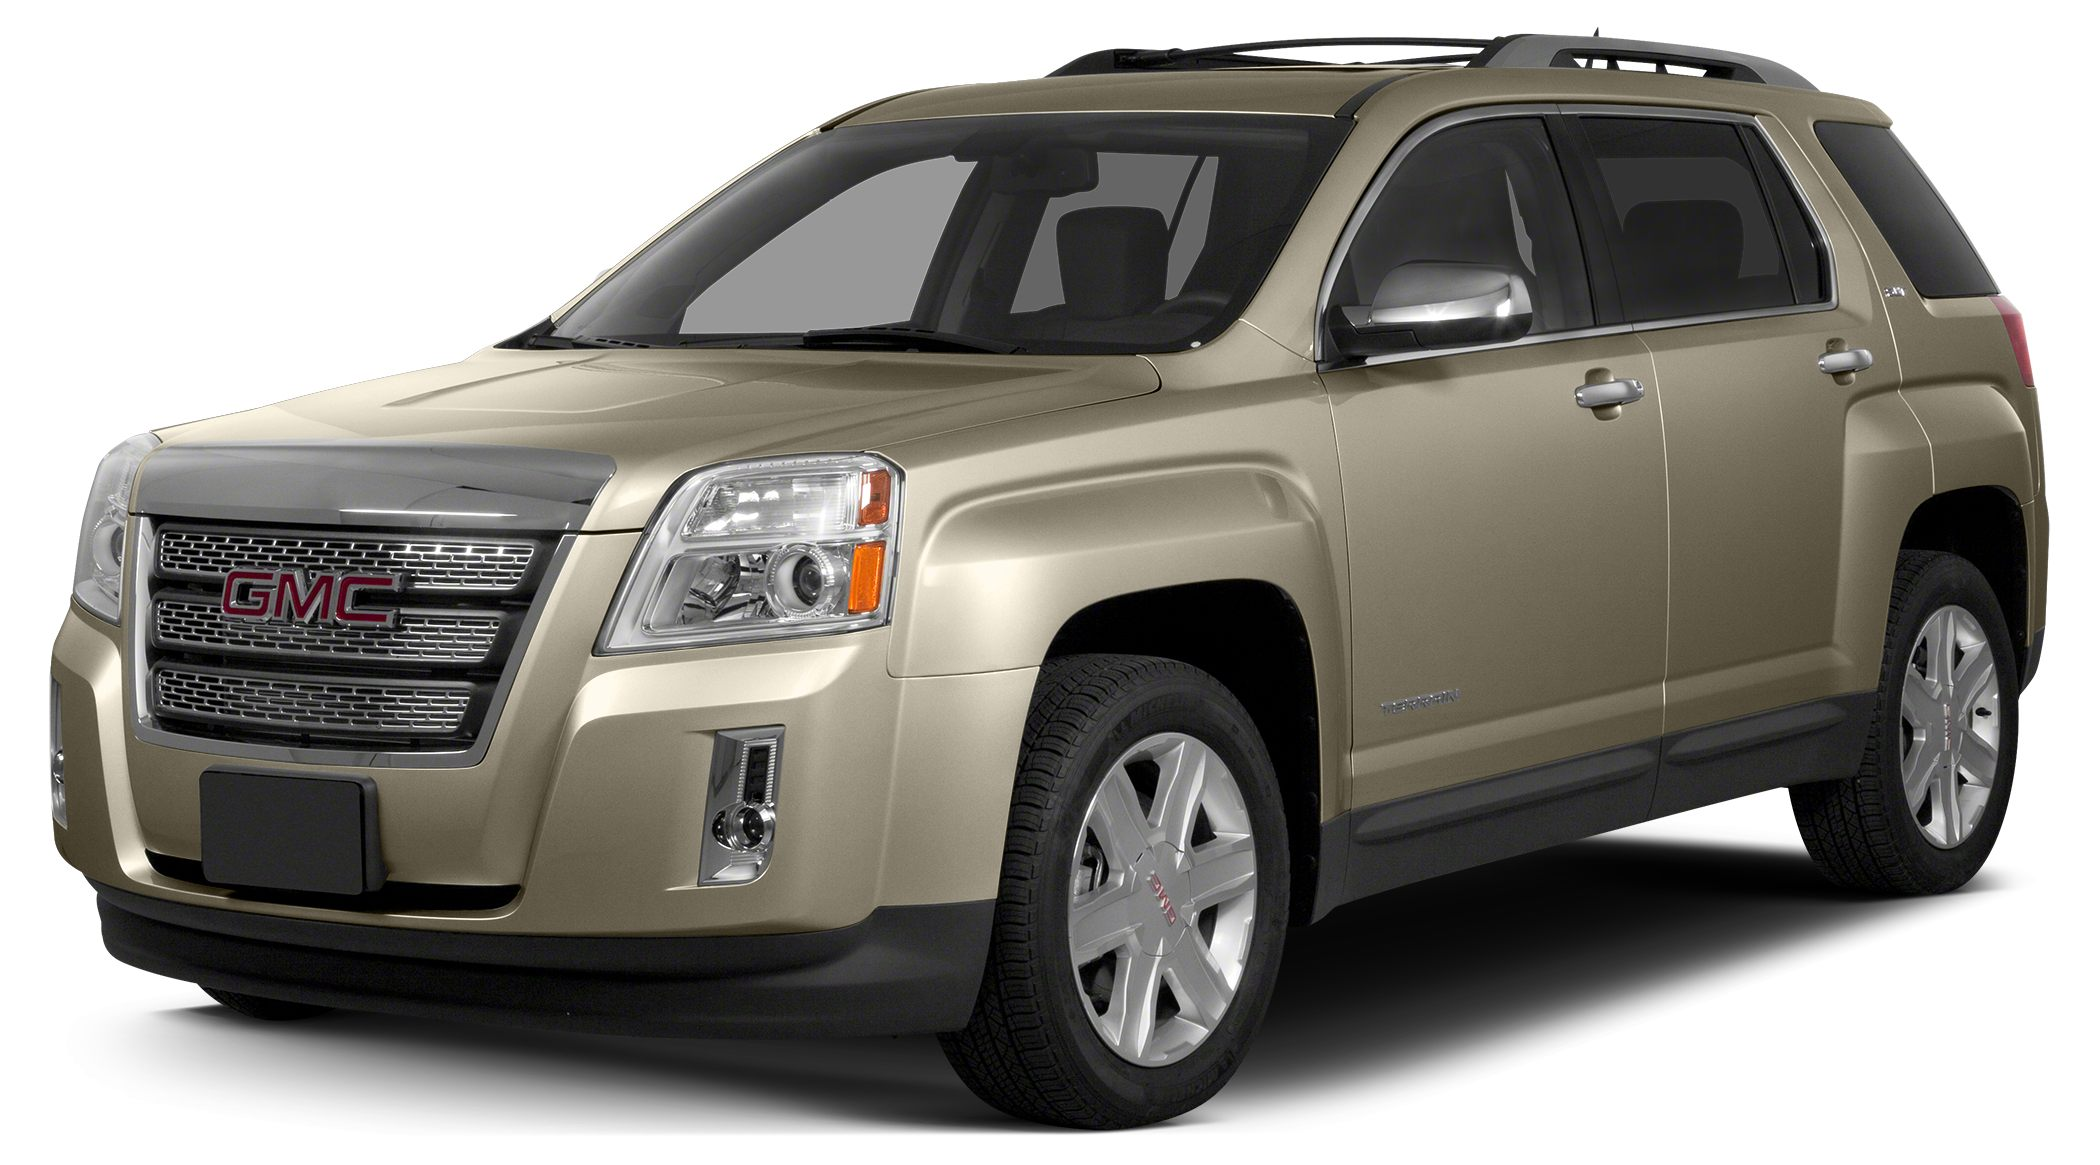 2015 GMC Terrain SLE-2 Success starts with Regal Honda Dont bother looking at any other SUV Thi